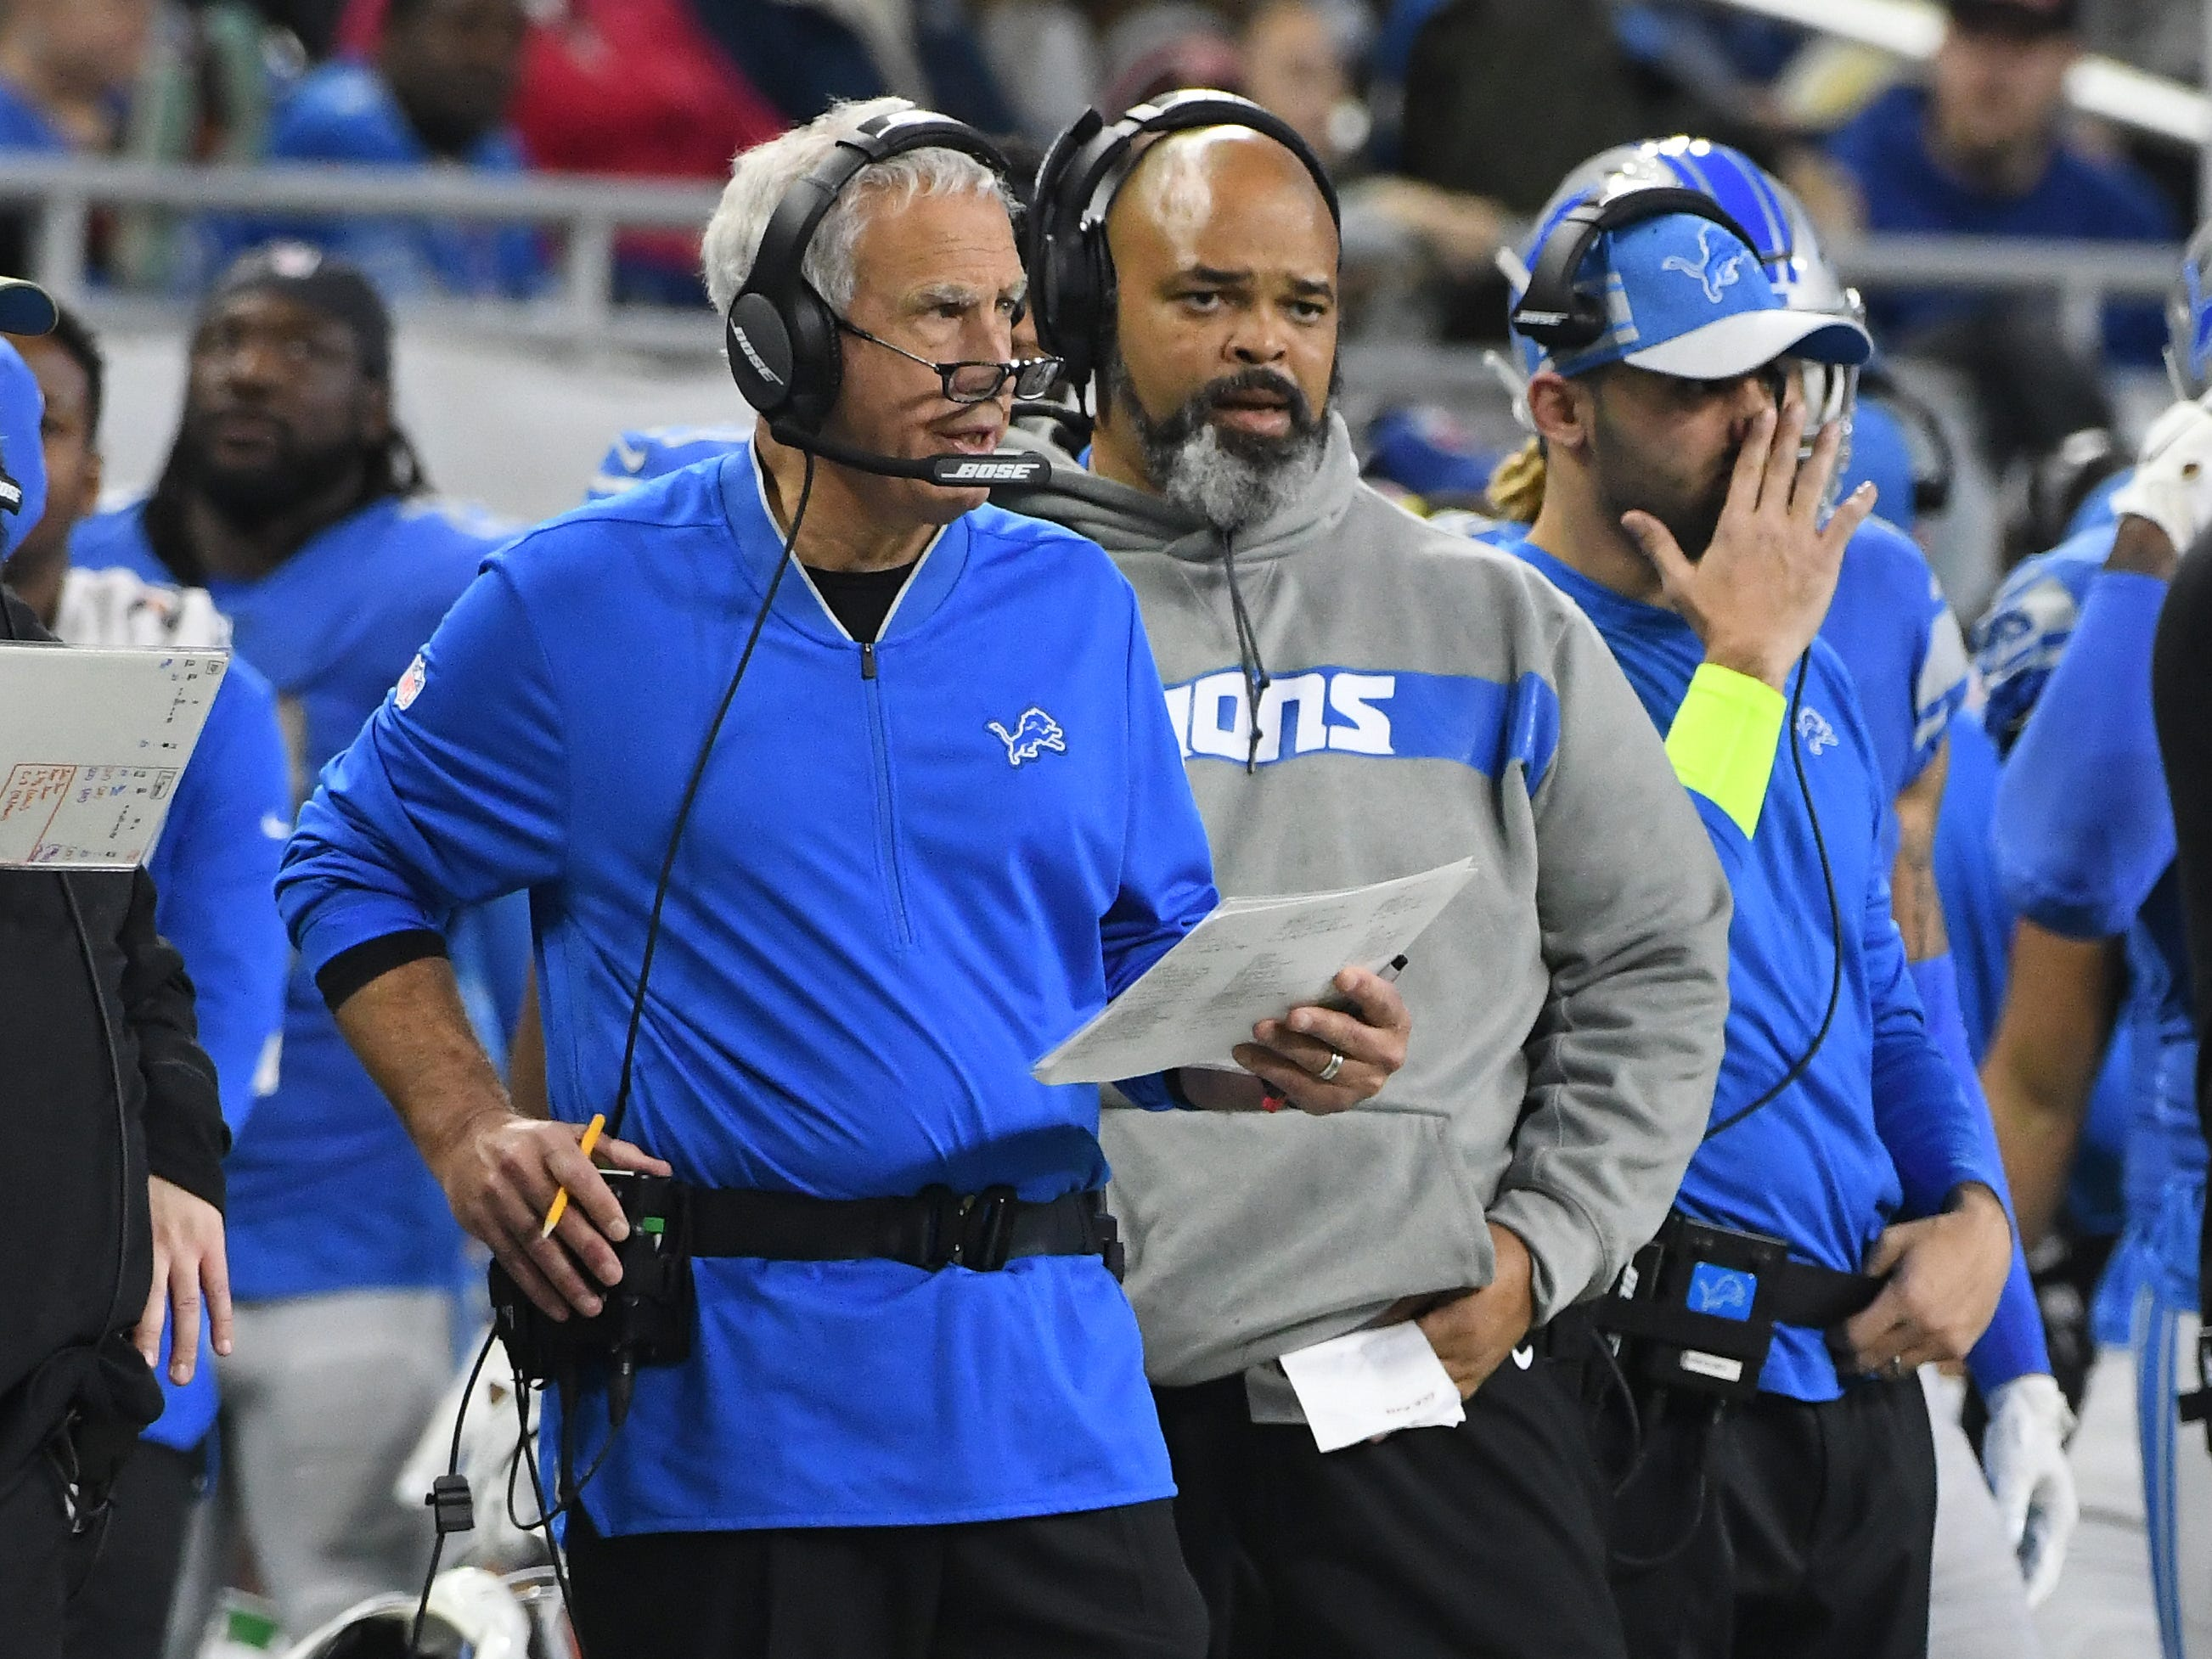 Lions defensive coordinator Paul Pasqualoni and defensive line coach Bo Davis on the sidelines in the fourth quarter.